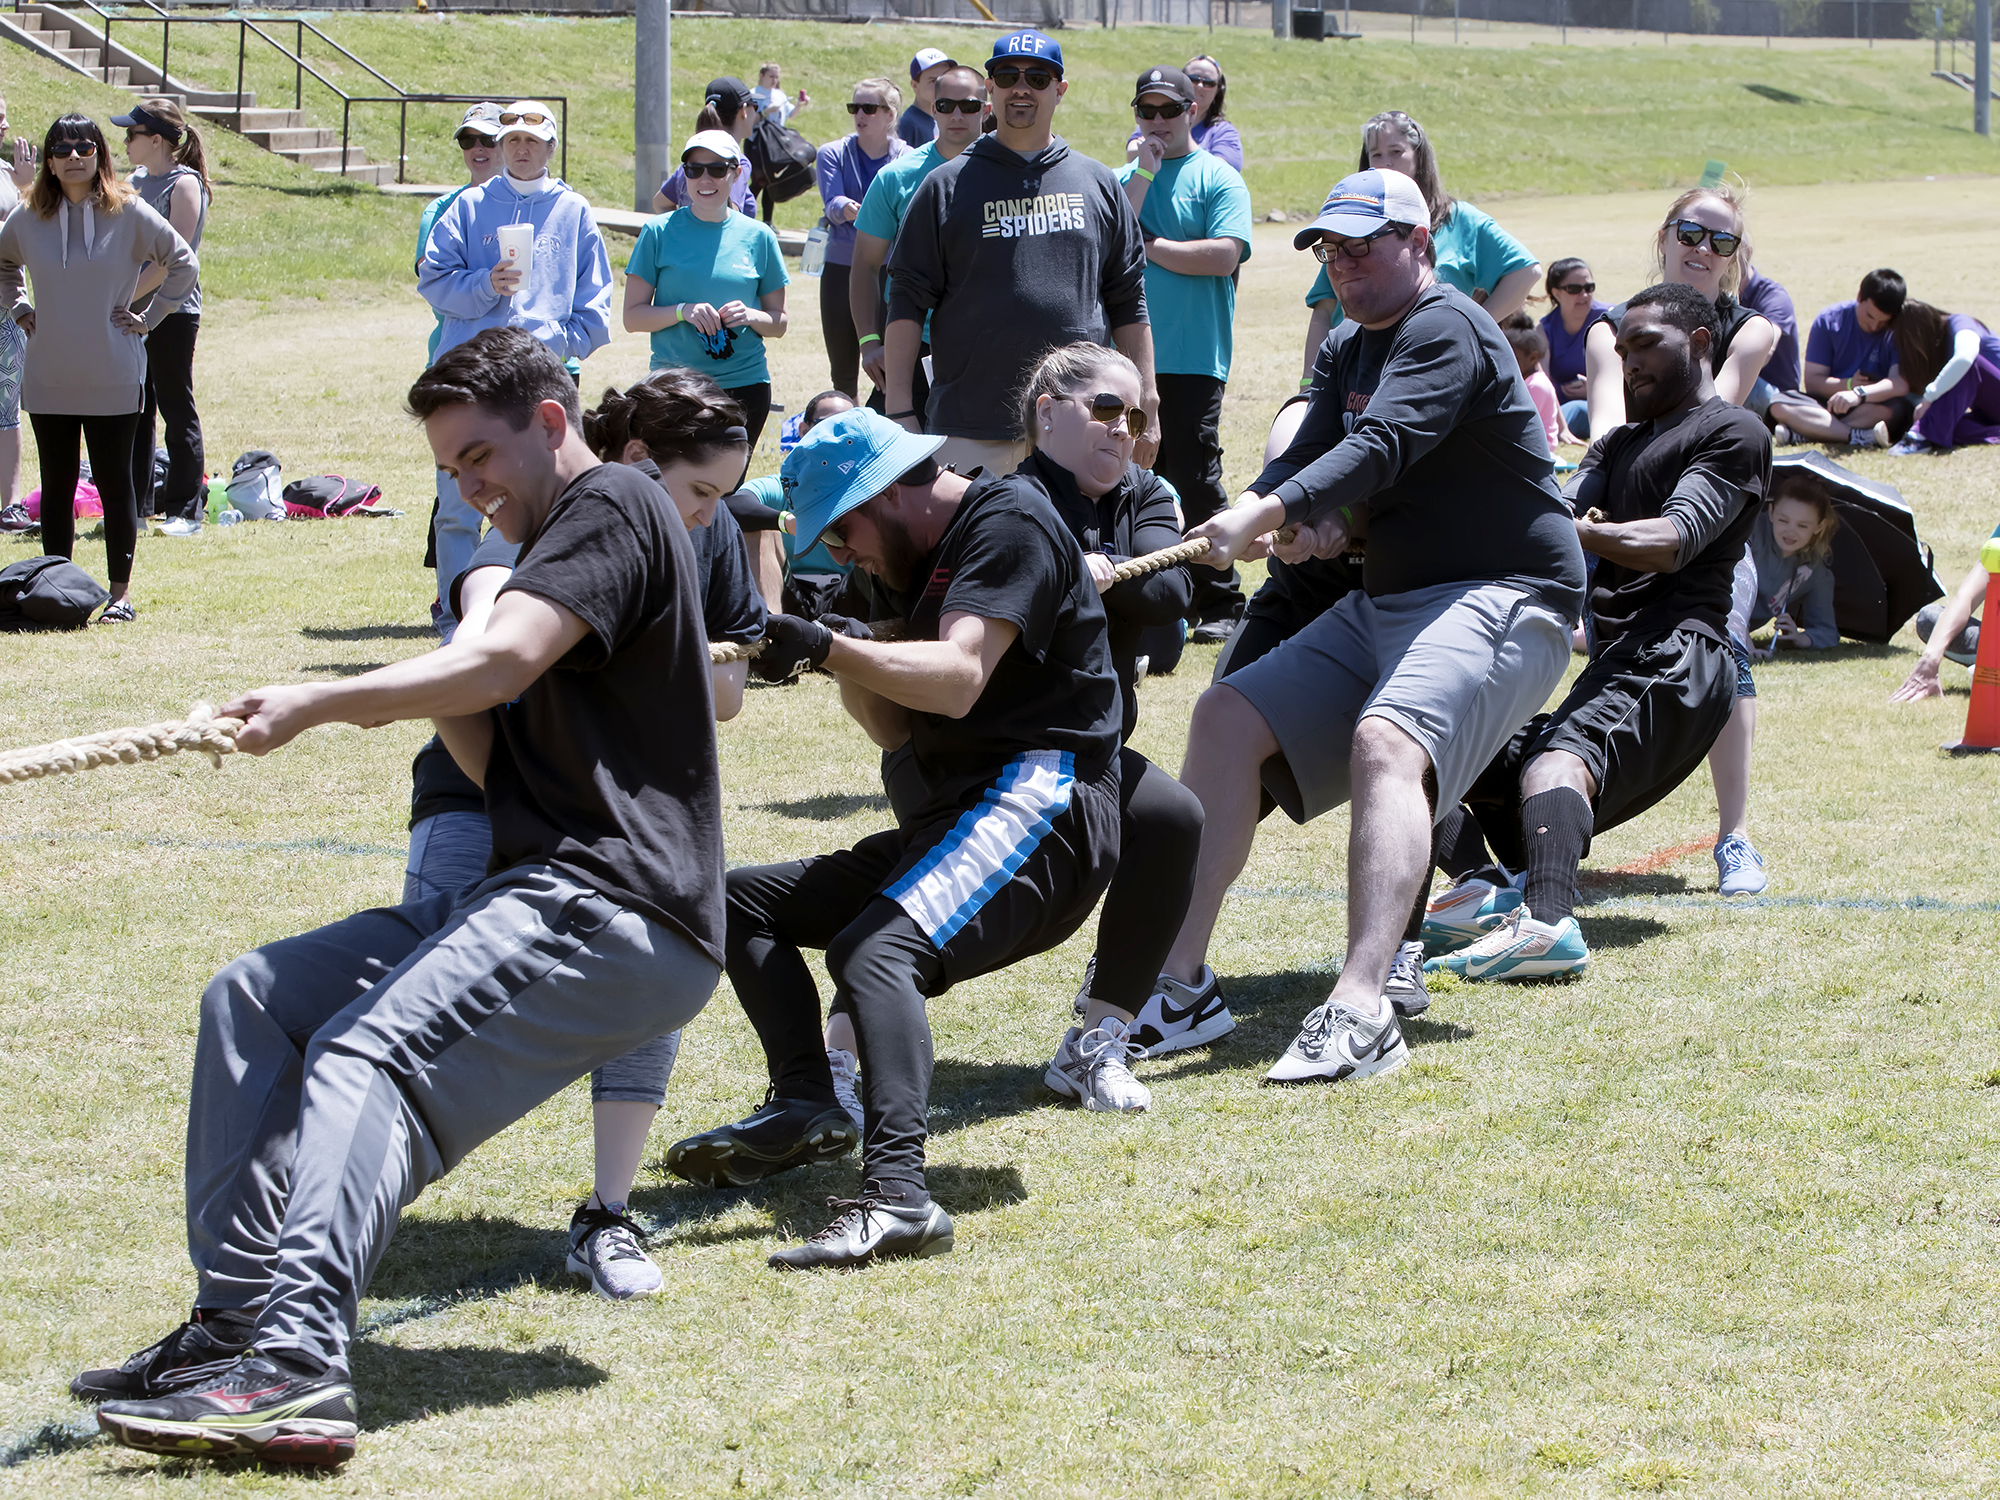 Cabarrus county education foundation news events photo gallery tug of war malvernweather Choice Image